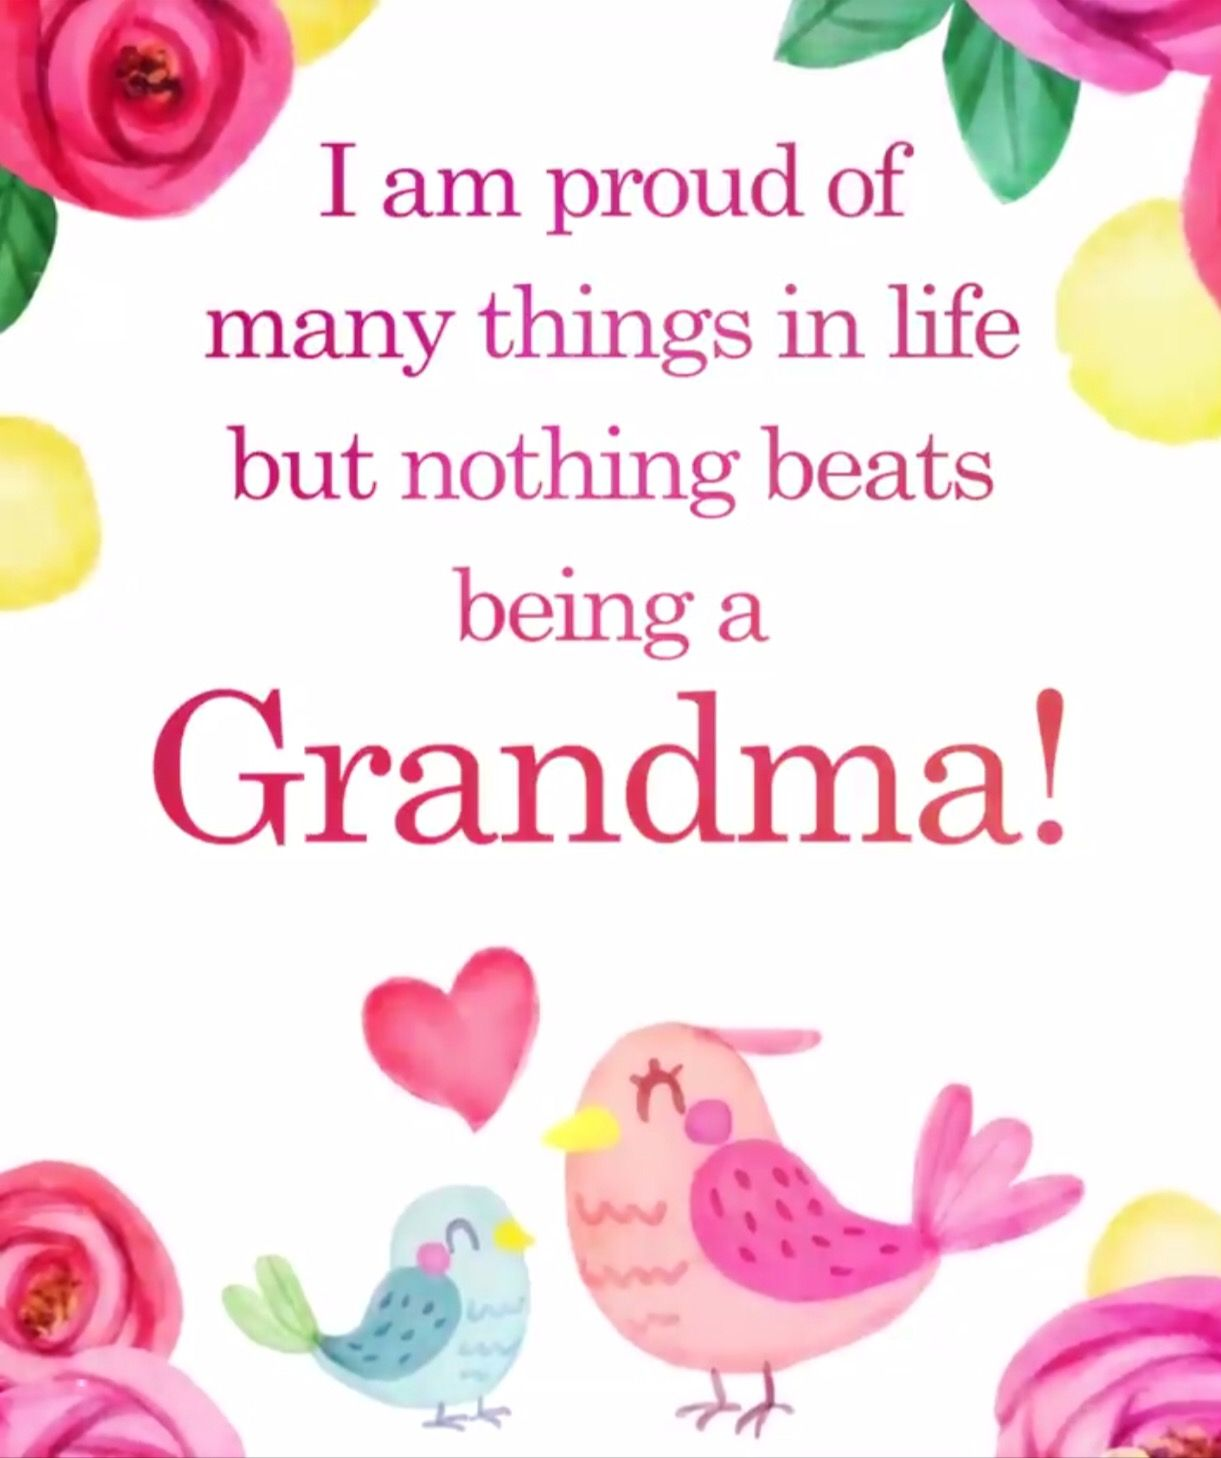 I love you 😘 ️ (With images) Happy grandparents day